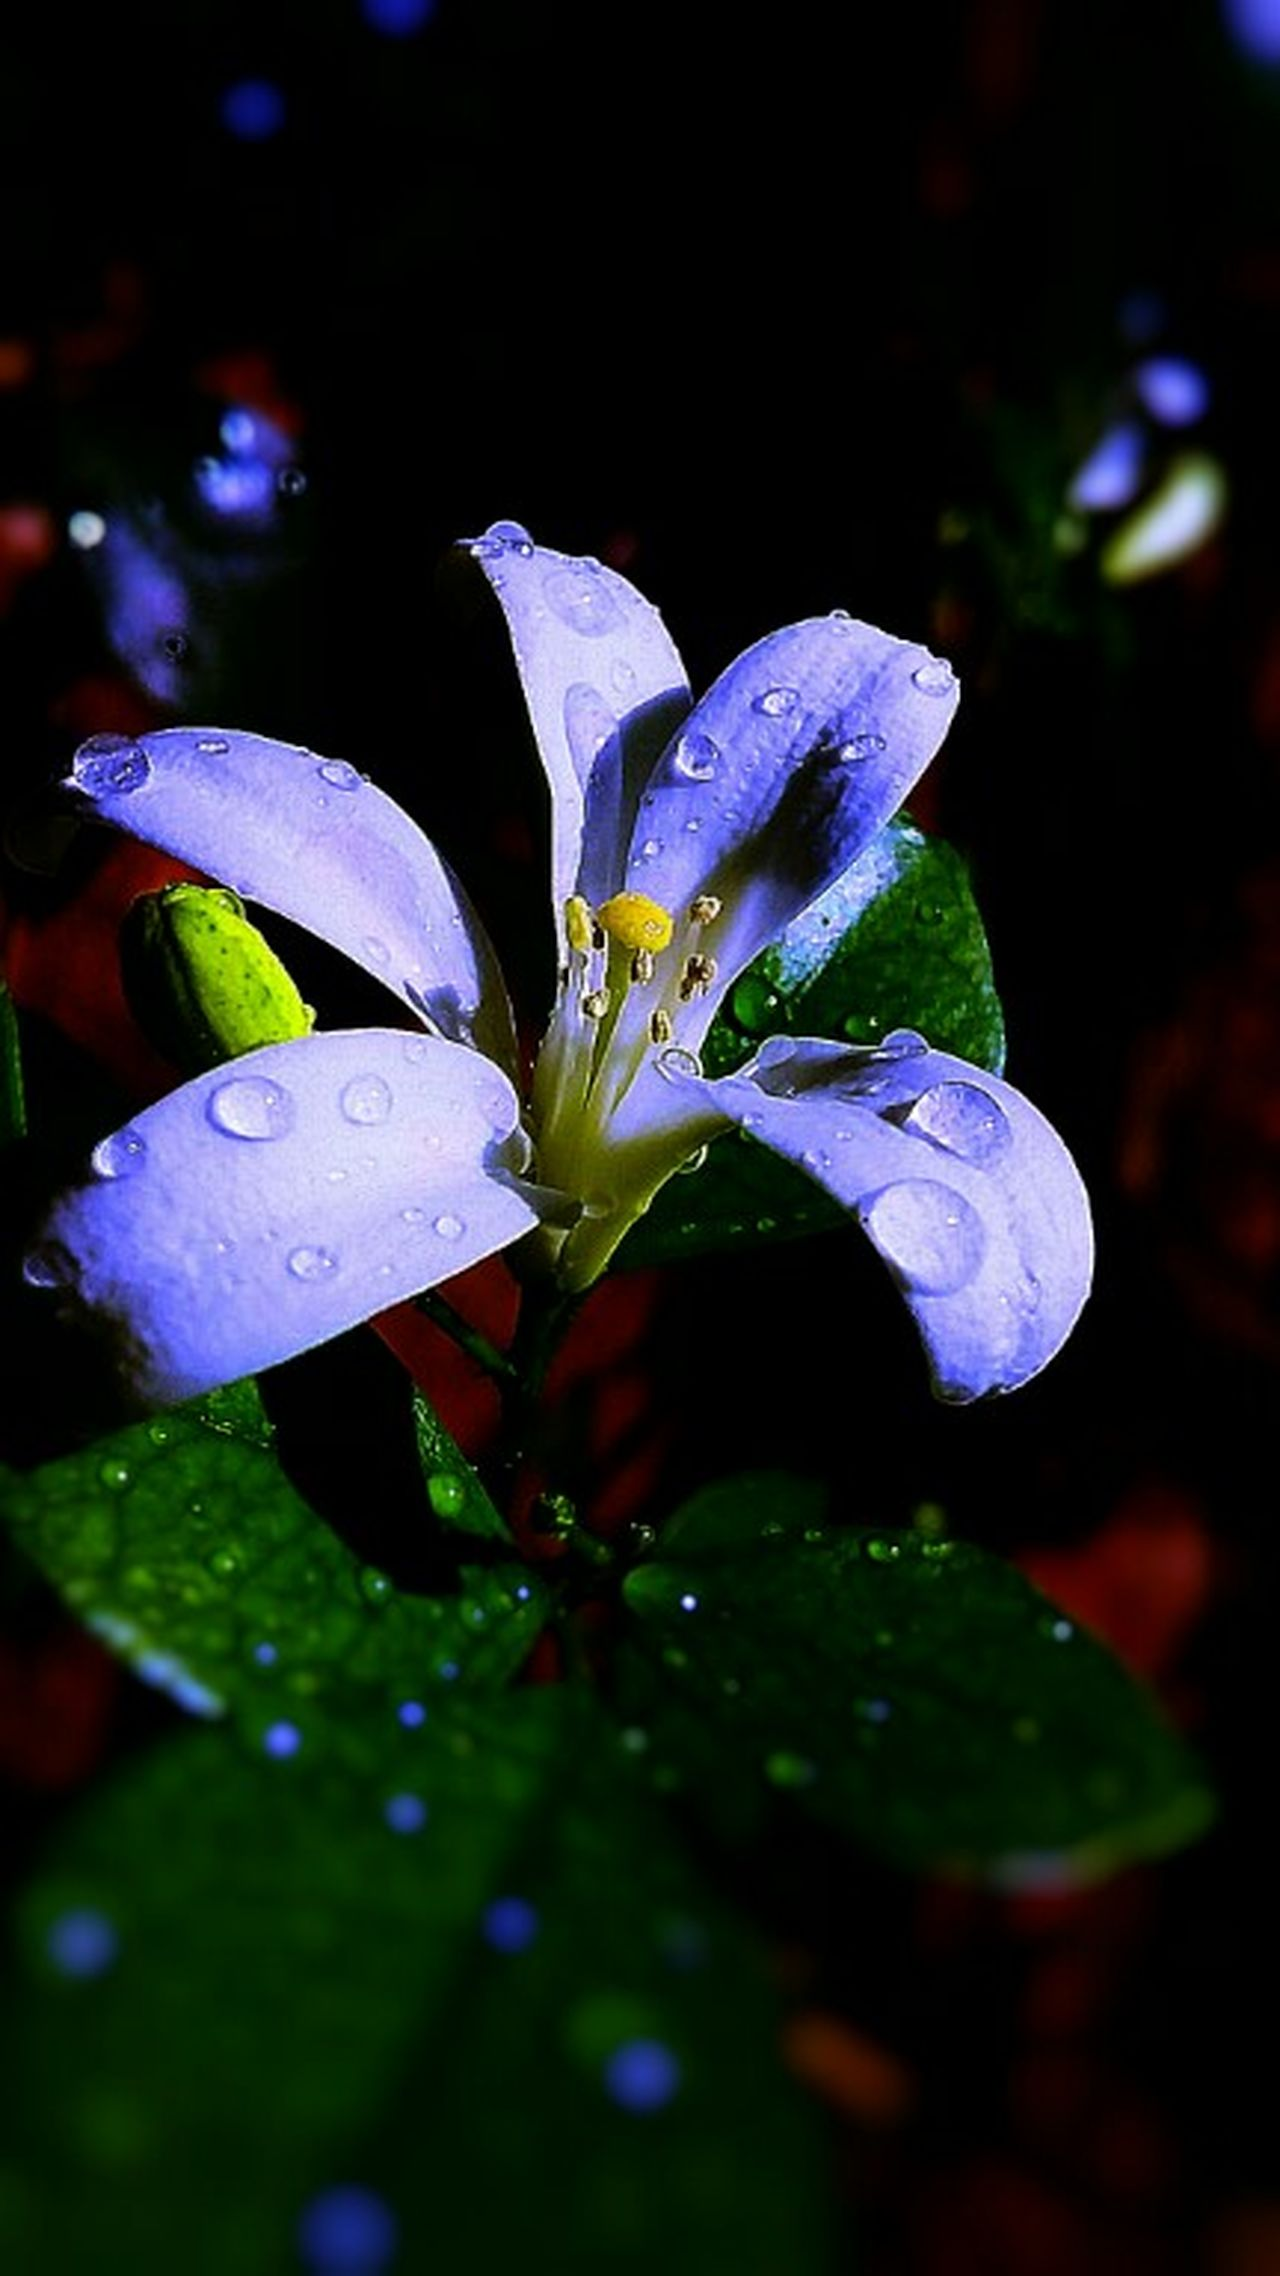 Goodnight...in blue light...😴 ..its raining at night..☁💧..please give me a jacket👚..😉 Flower Macro Lonely Flower Petals Close Up Droplets On Flower Night Photography Getting Inspired EyeEm Gallery Hi Hello World Eyeemphotography Awesome EyeEm Best Shots Still Life Close-up EyeEm Masterclass Eyeem Market Botany Every Flower Is A Soul EyeEm Nature Lover EyeEm Best Shots - Nature Colorful Blooming Check This Out With Love From India💚